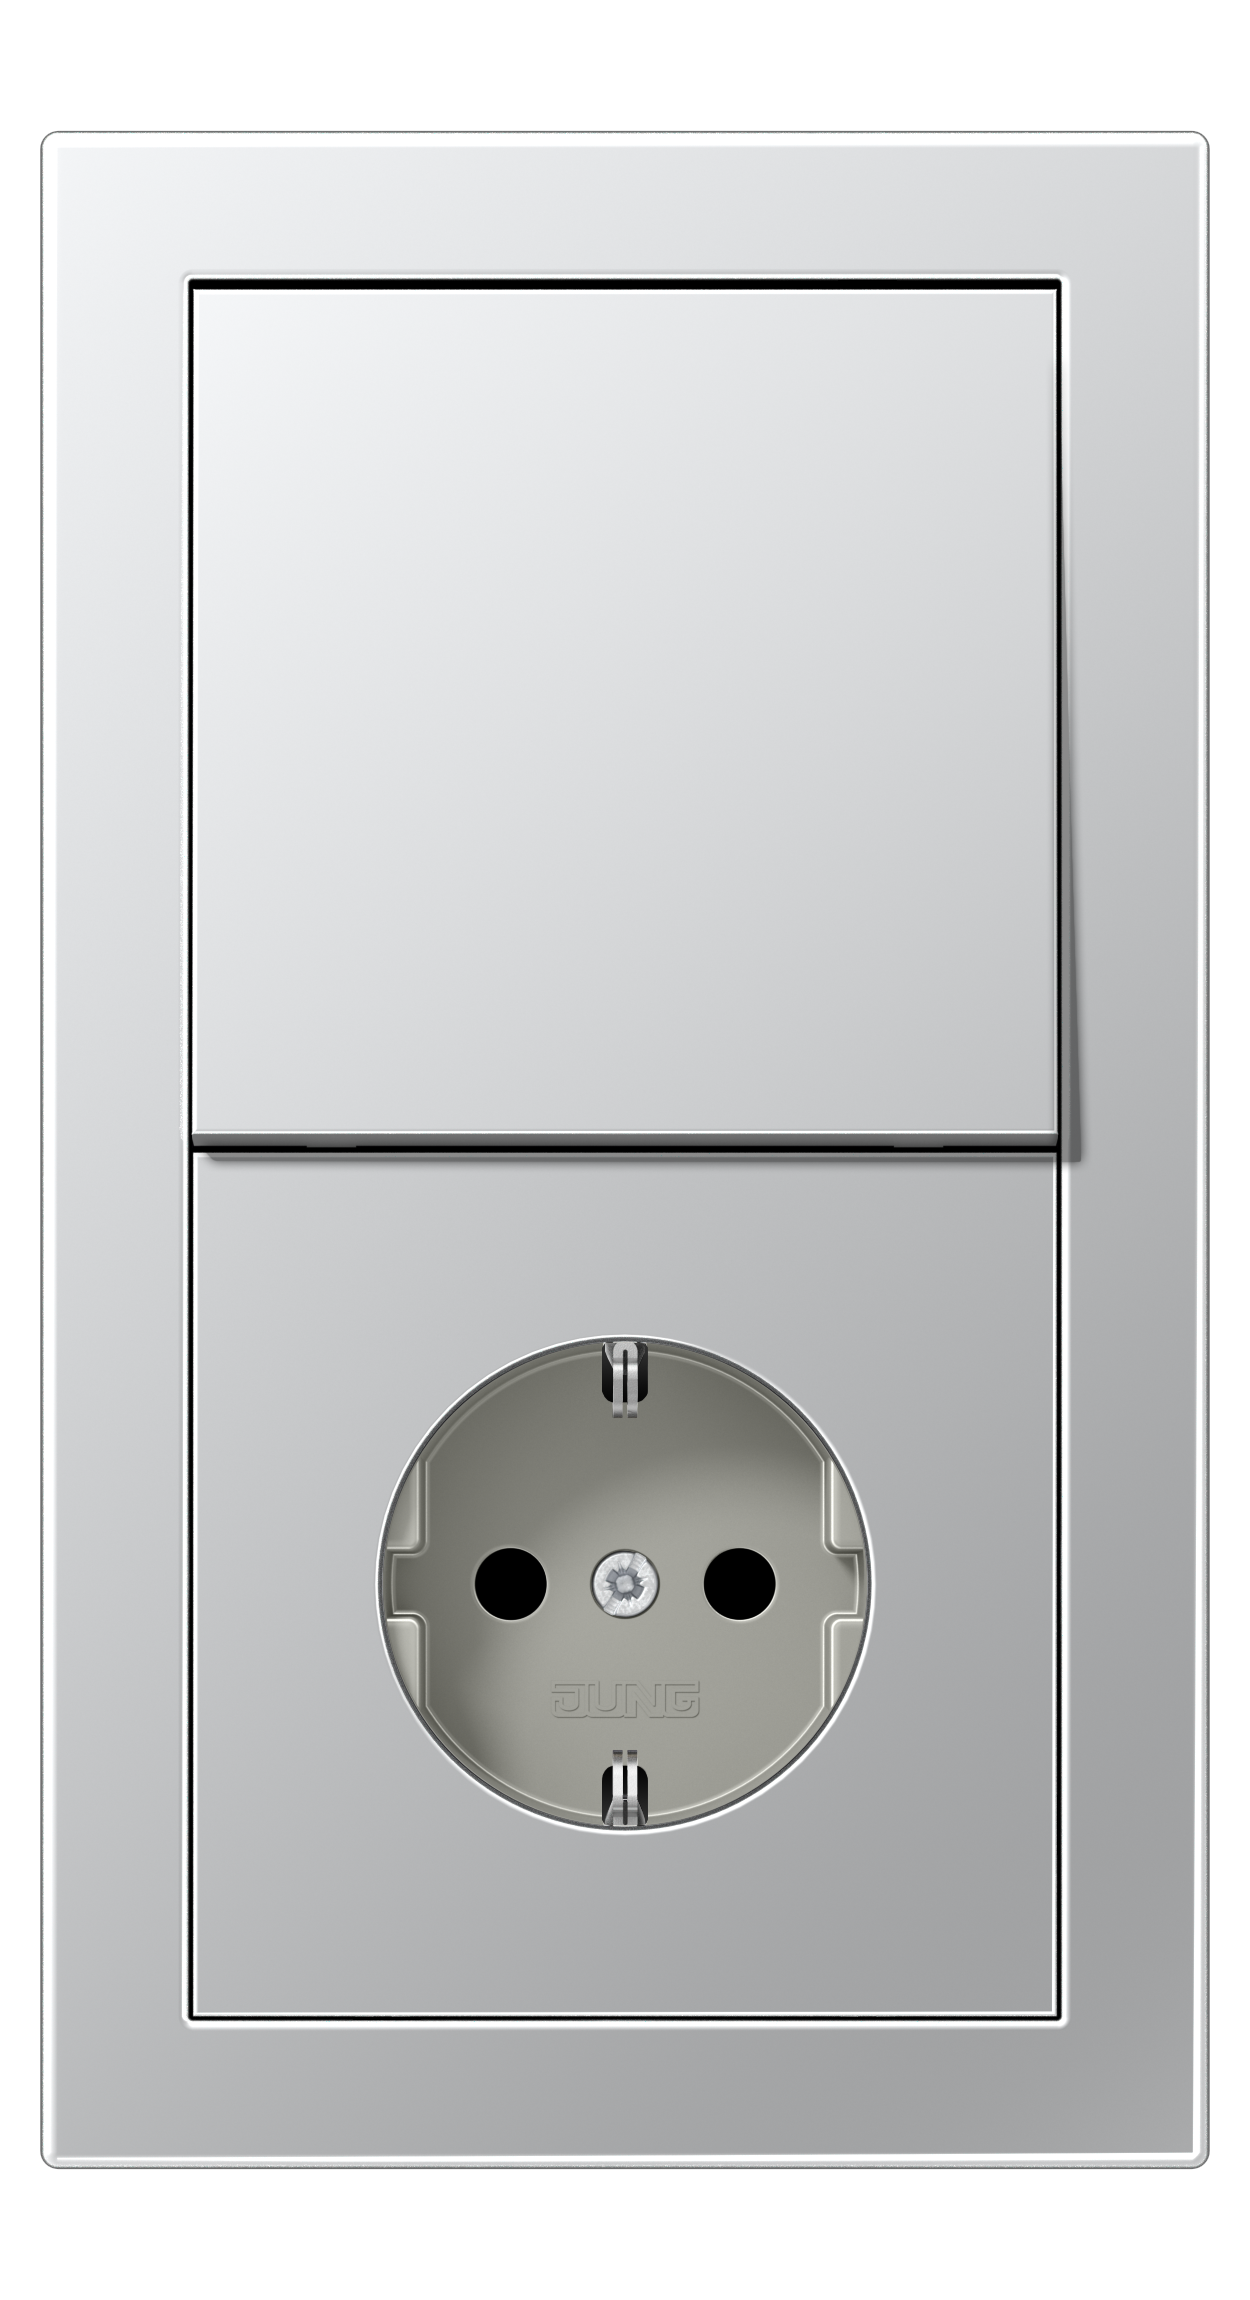 JUNG_LS_Design_aluminium_switch_socket